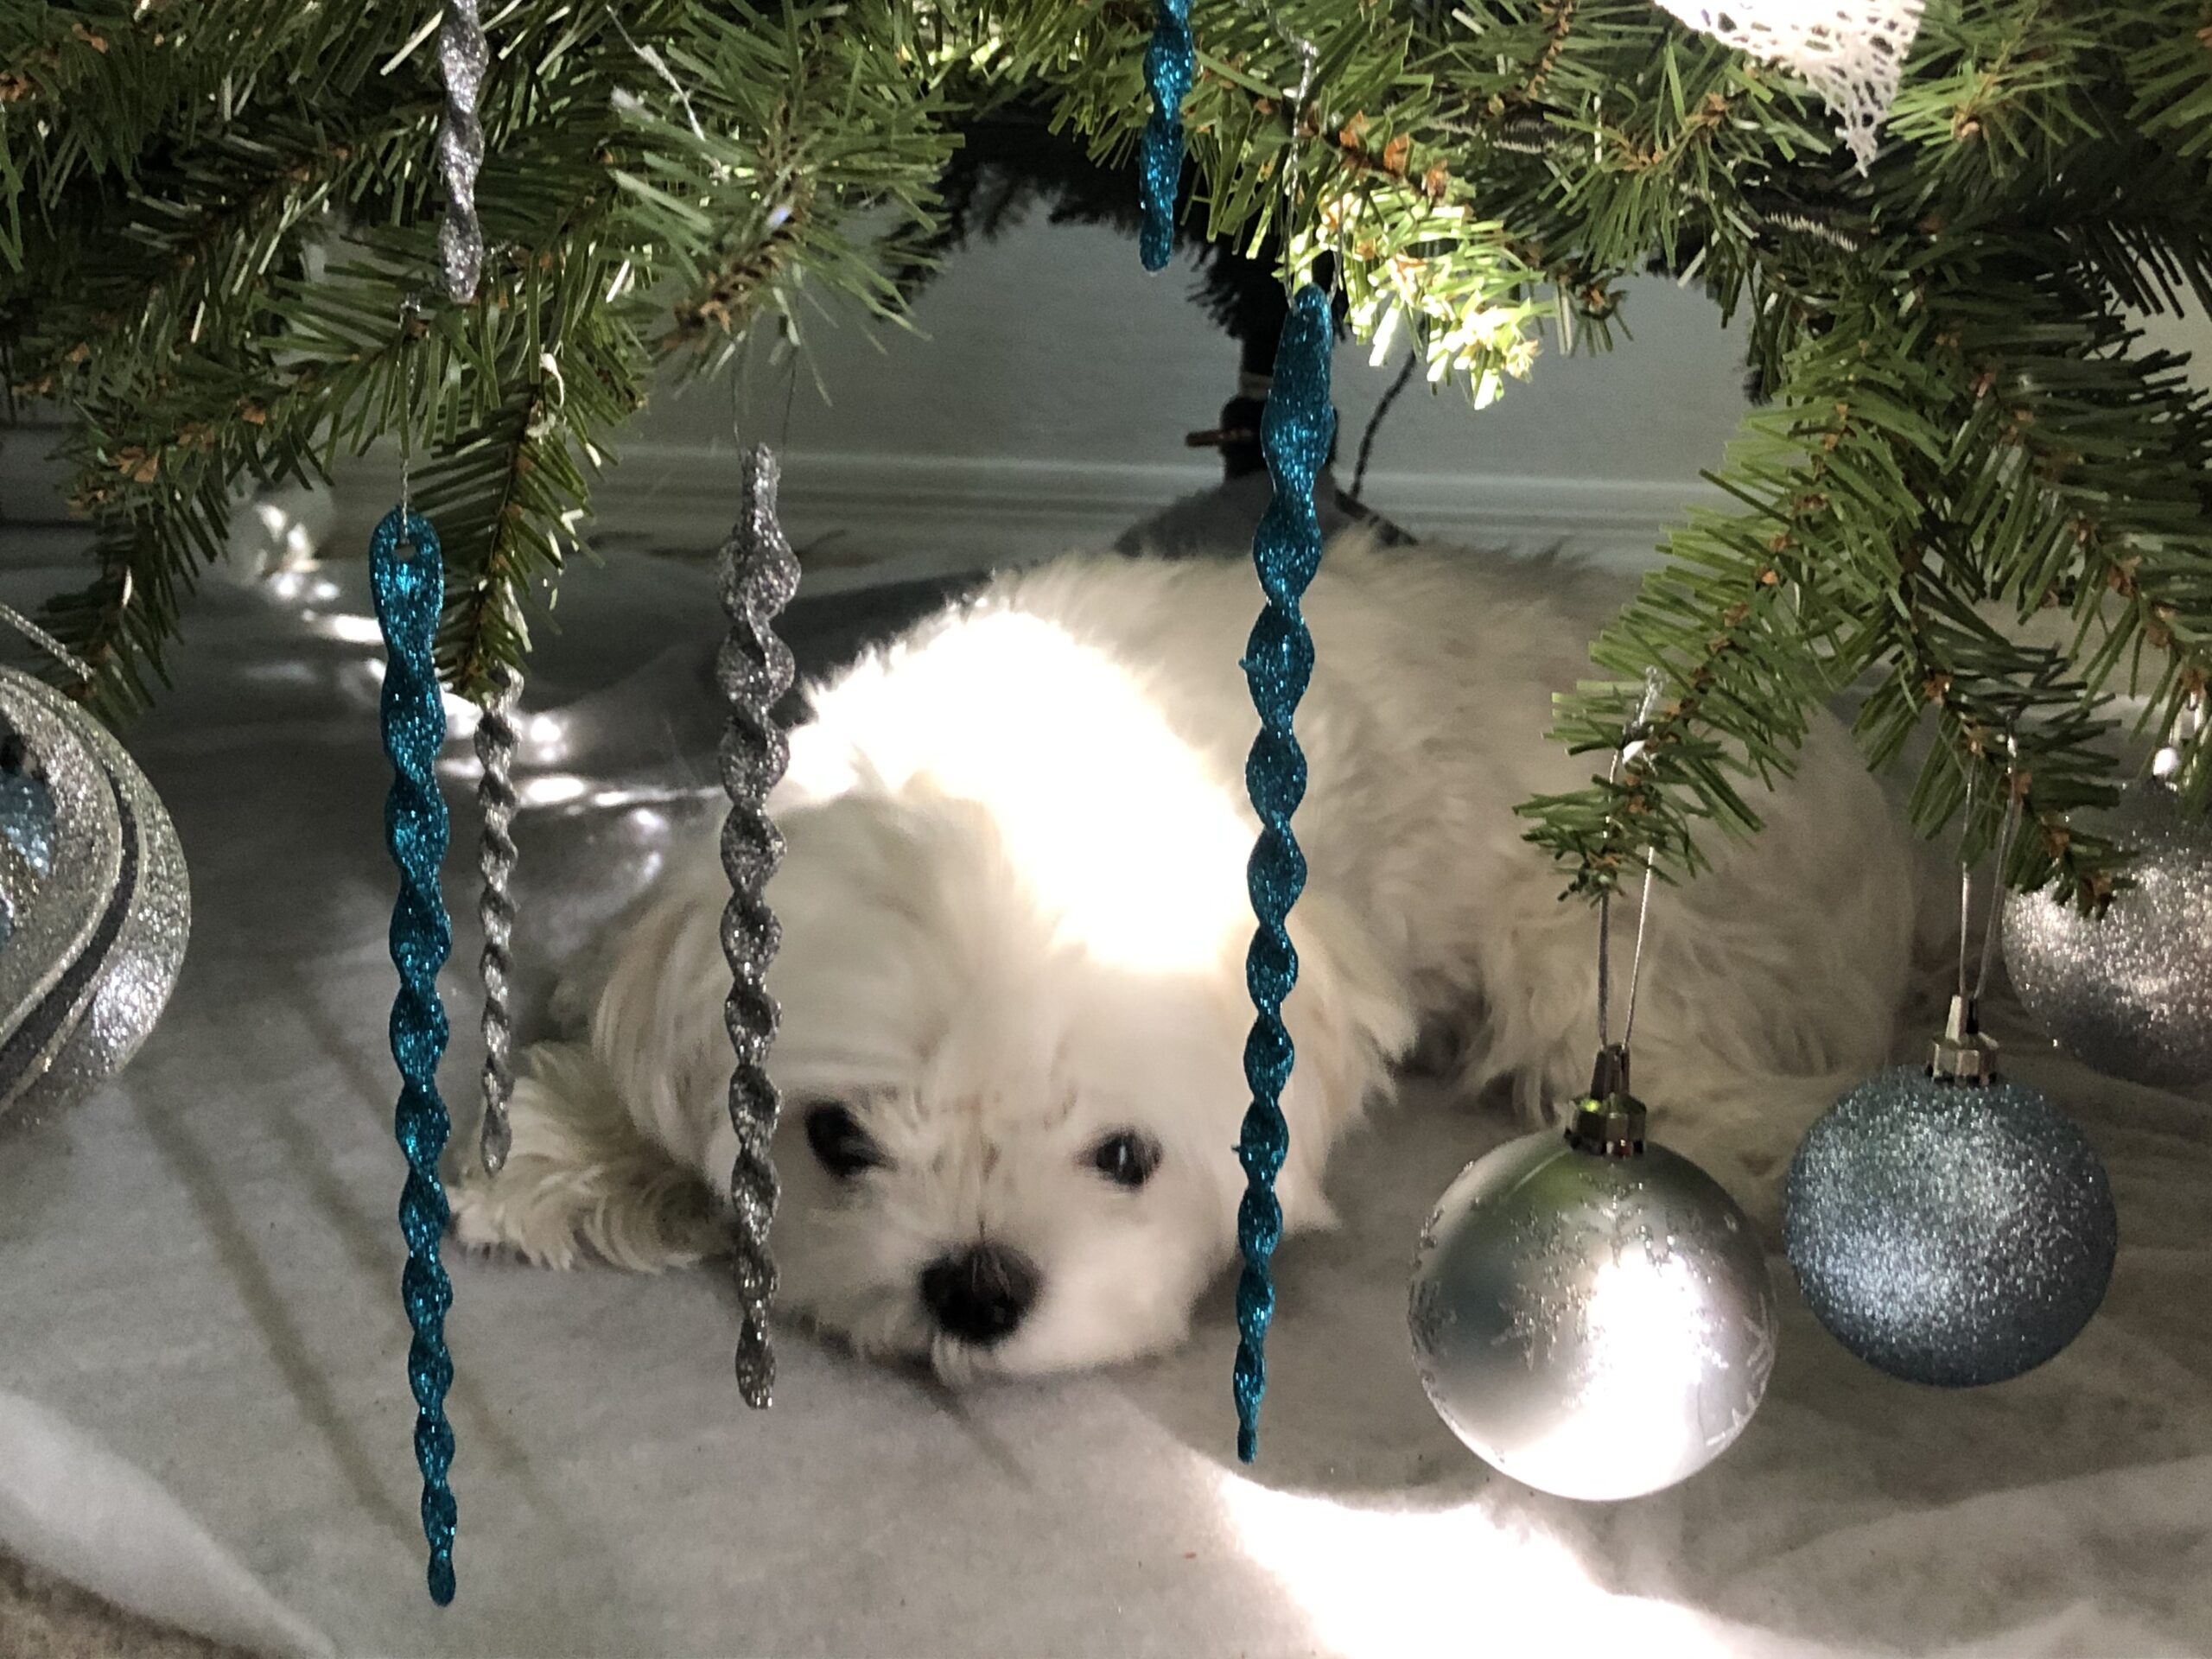 Achilles at Christmas